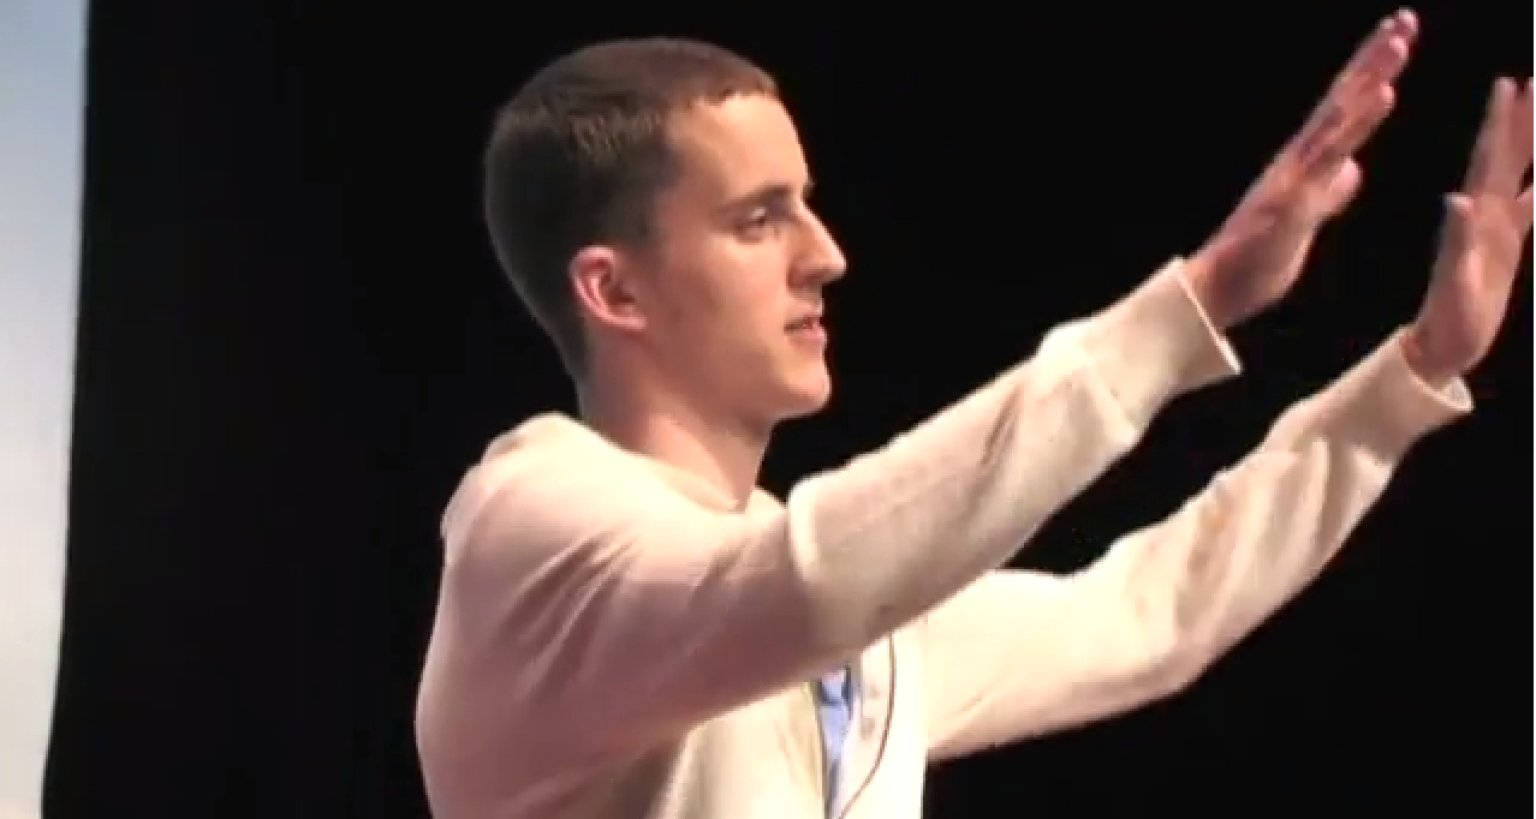 Teen's Heartbreaking Speech On What It's Like To Live With Depression (VIDEO)